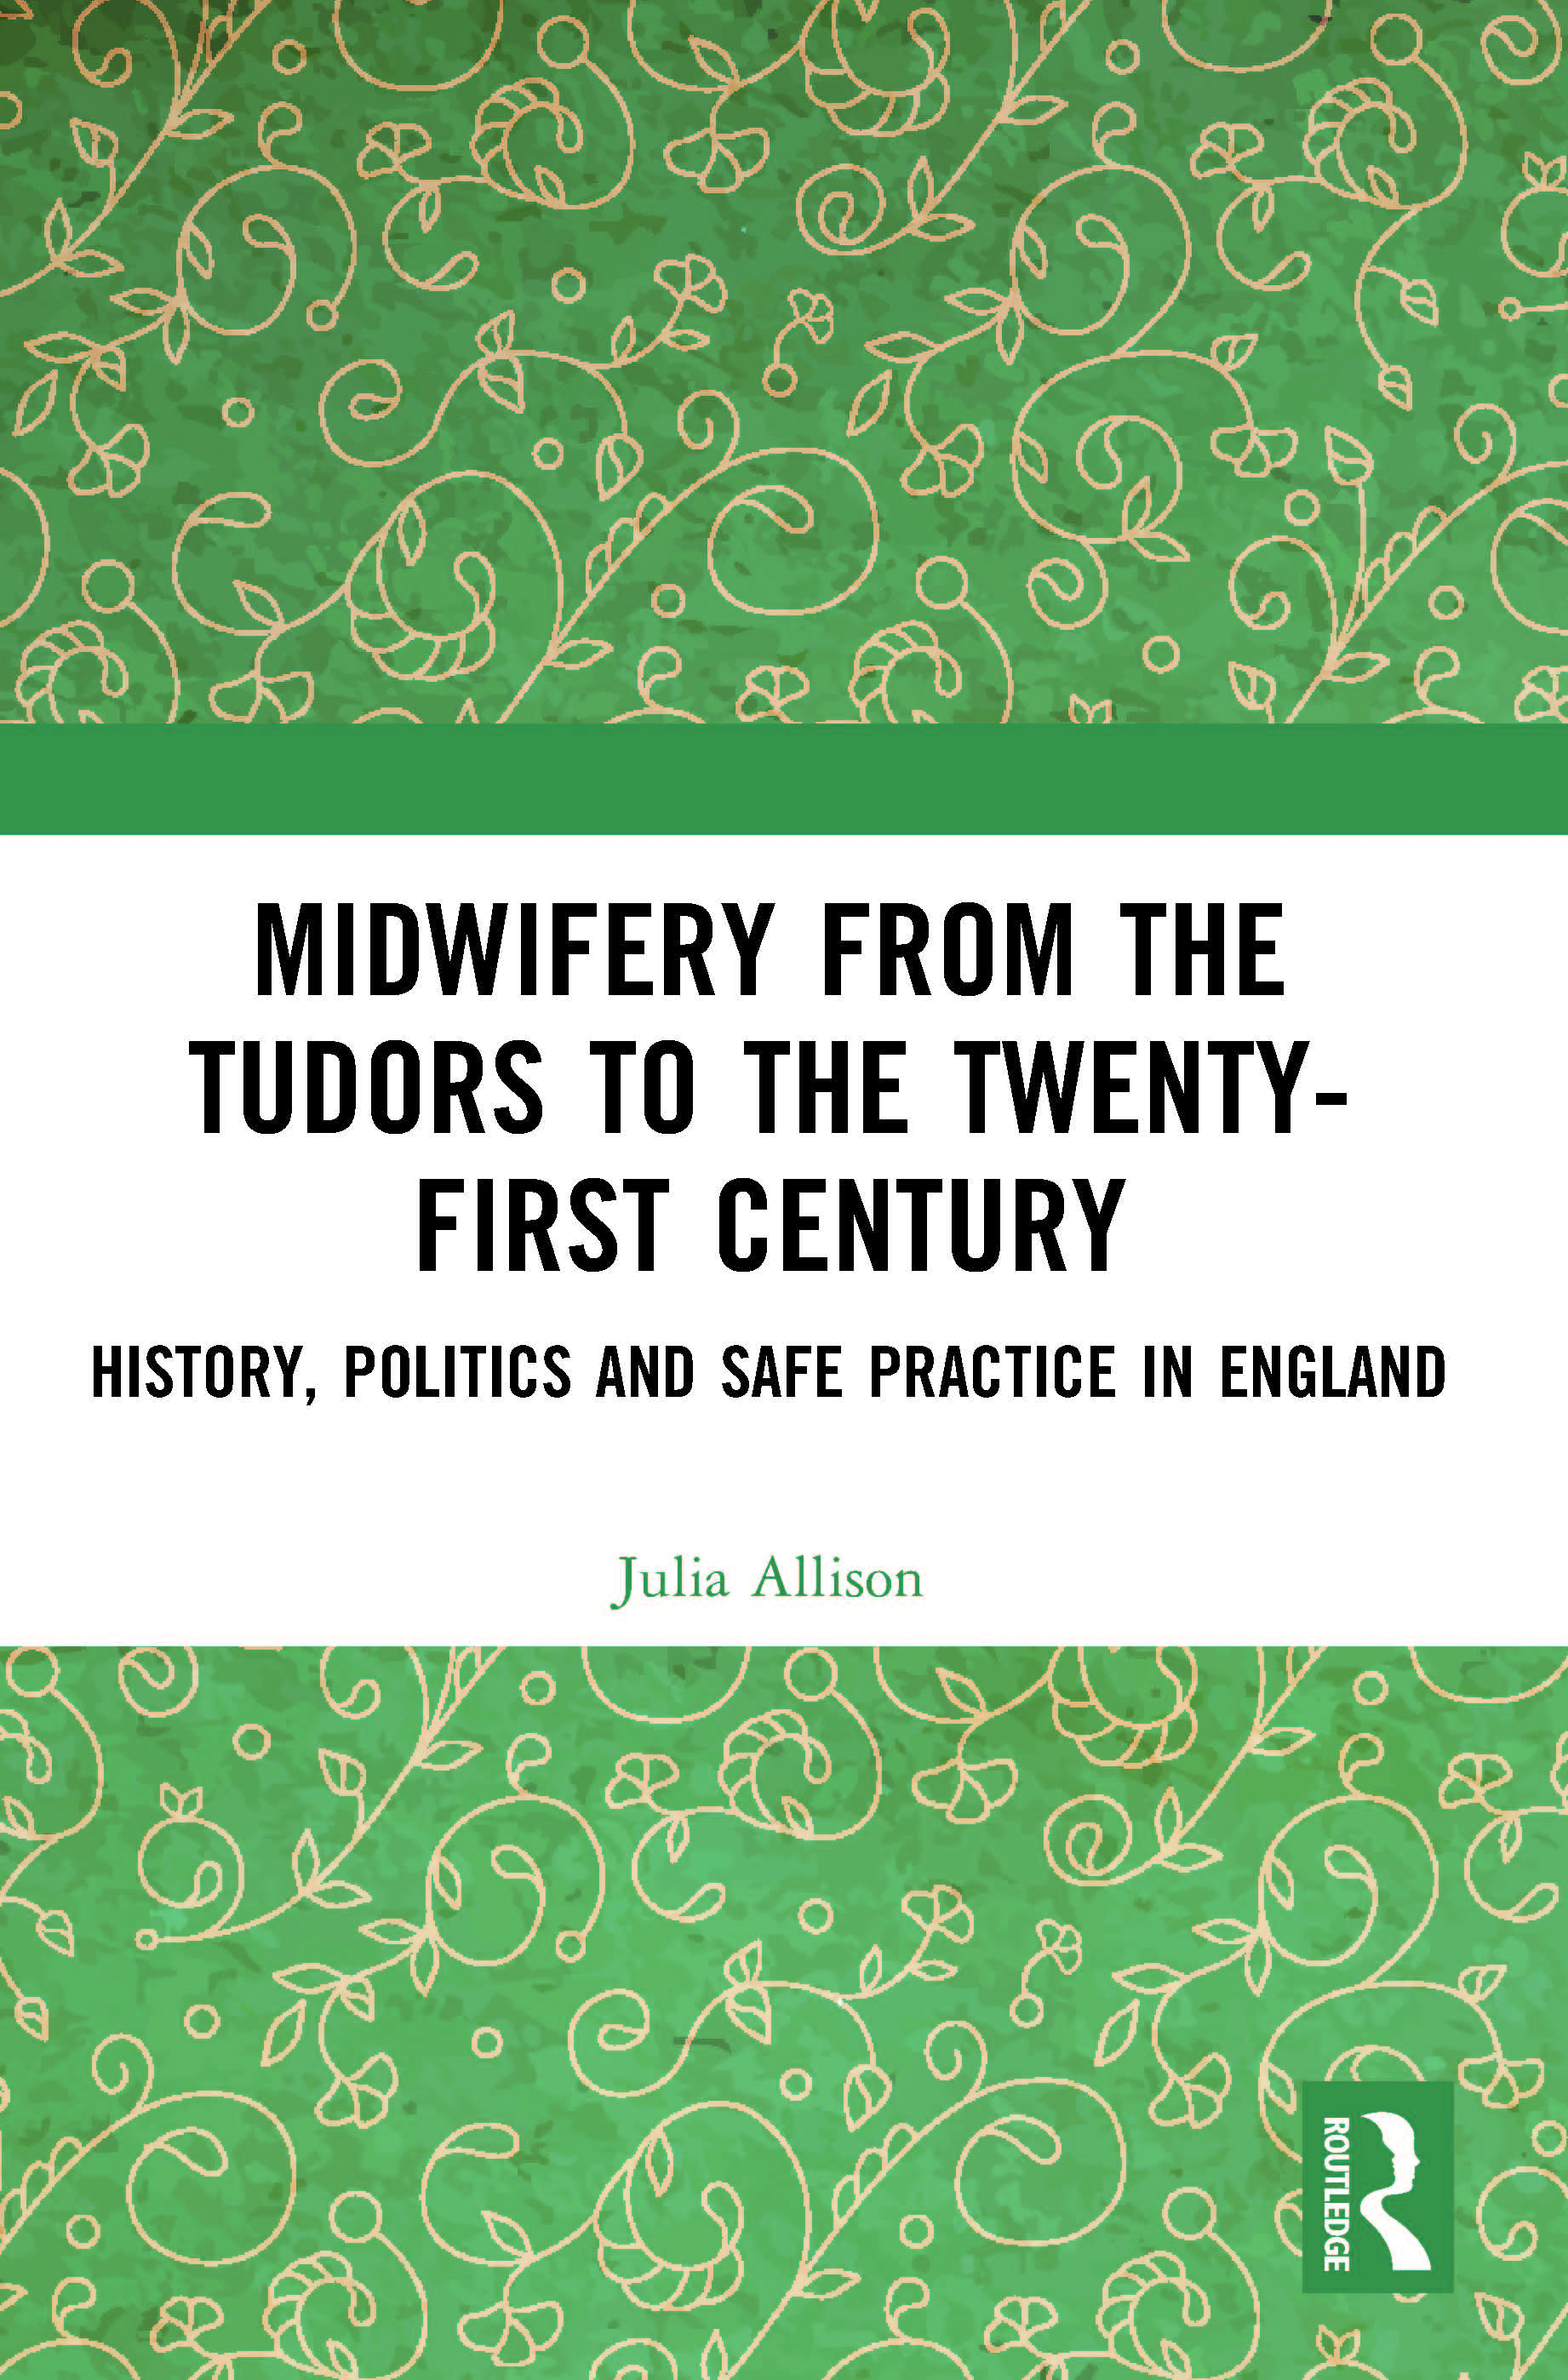 Midwifery from the Tudors to the Twenty-First Century: History, Politics and Safe Practice in England book cover